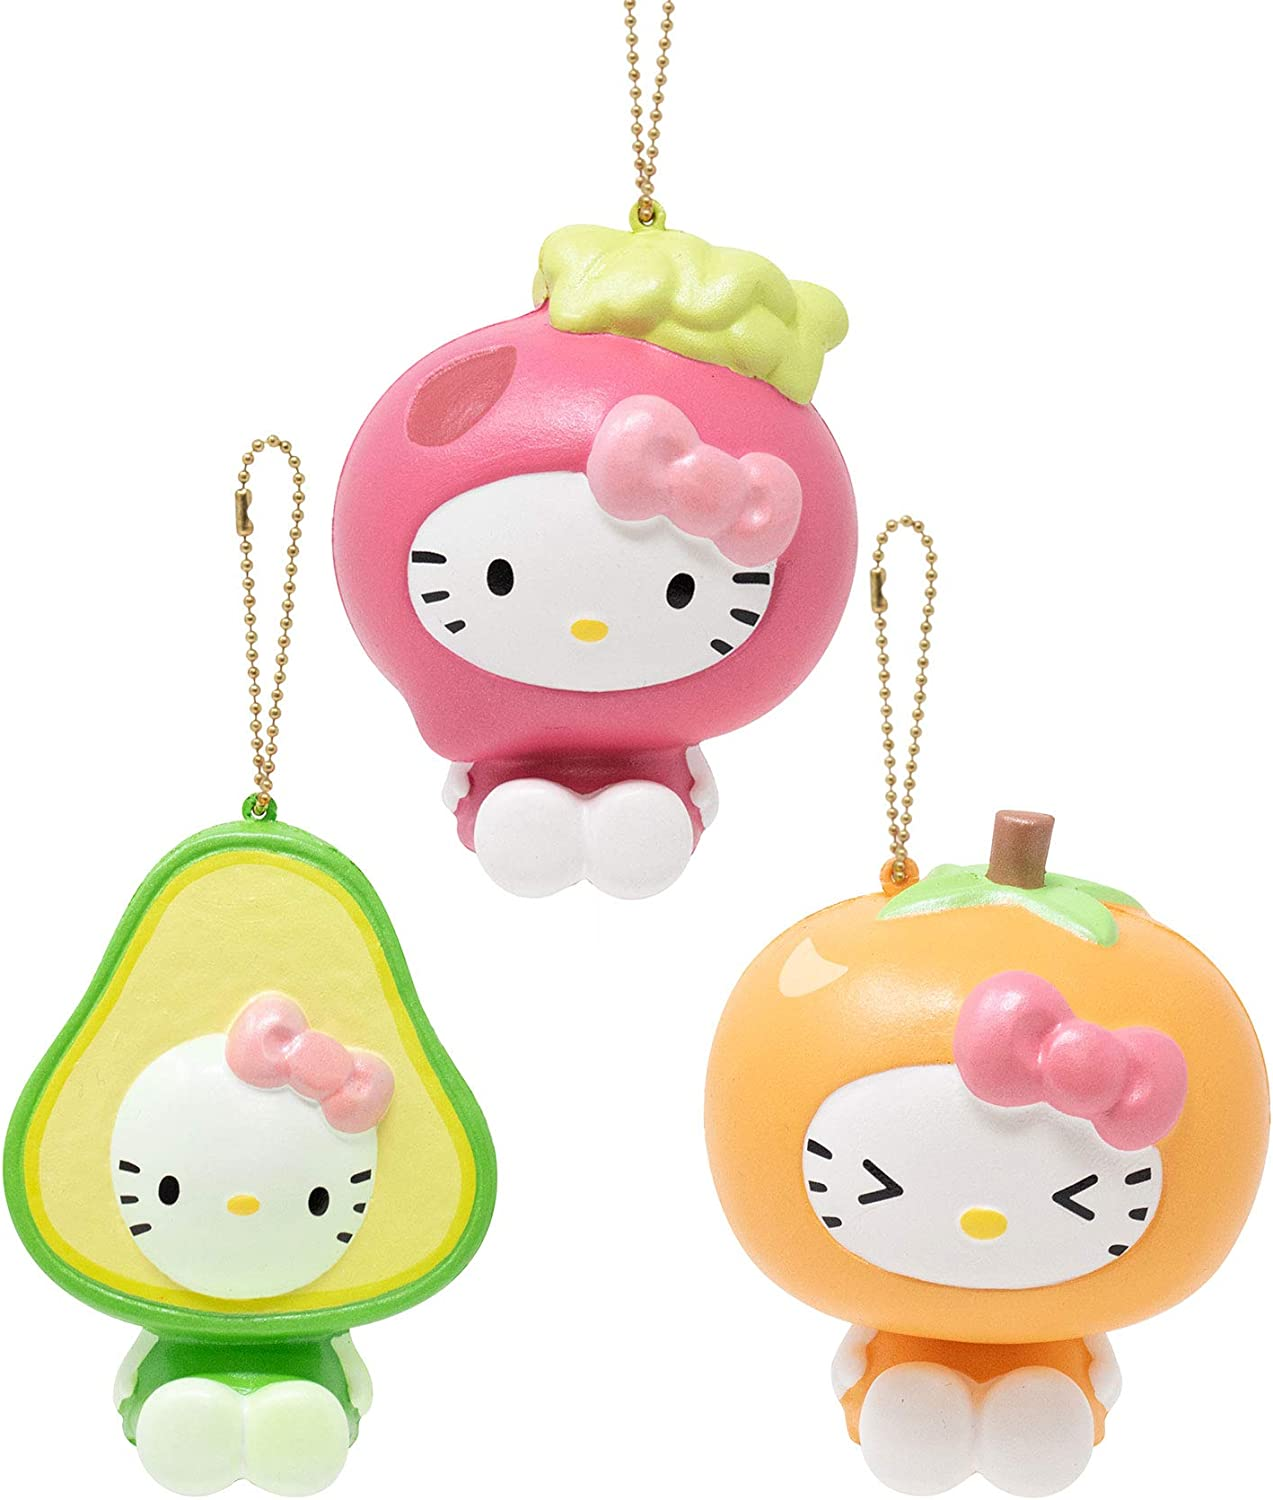 Sanrio Officially Licensed Hello Kitty Fruit and Veggie Cute Slow Rising Squishy Toy (Avocado, Persimmon, Beet, 3 Piece Set) [Birthday Gift Box, Party Favors, Gift Basket Filler, Stress Relief Toys]